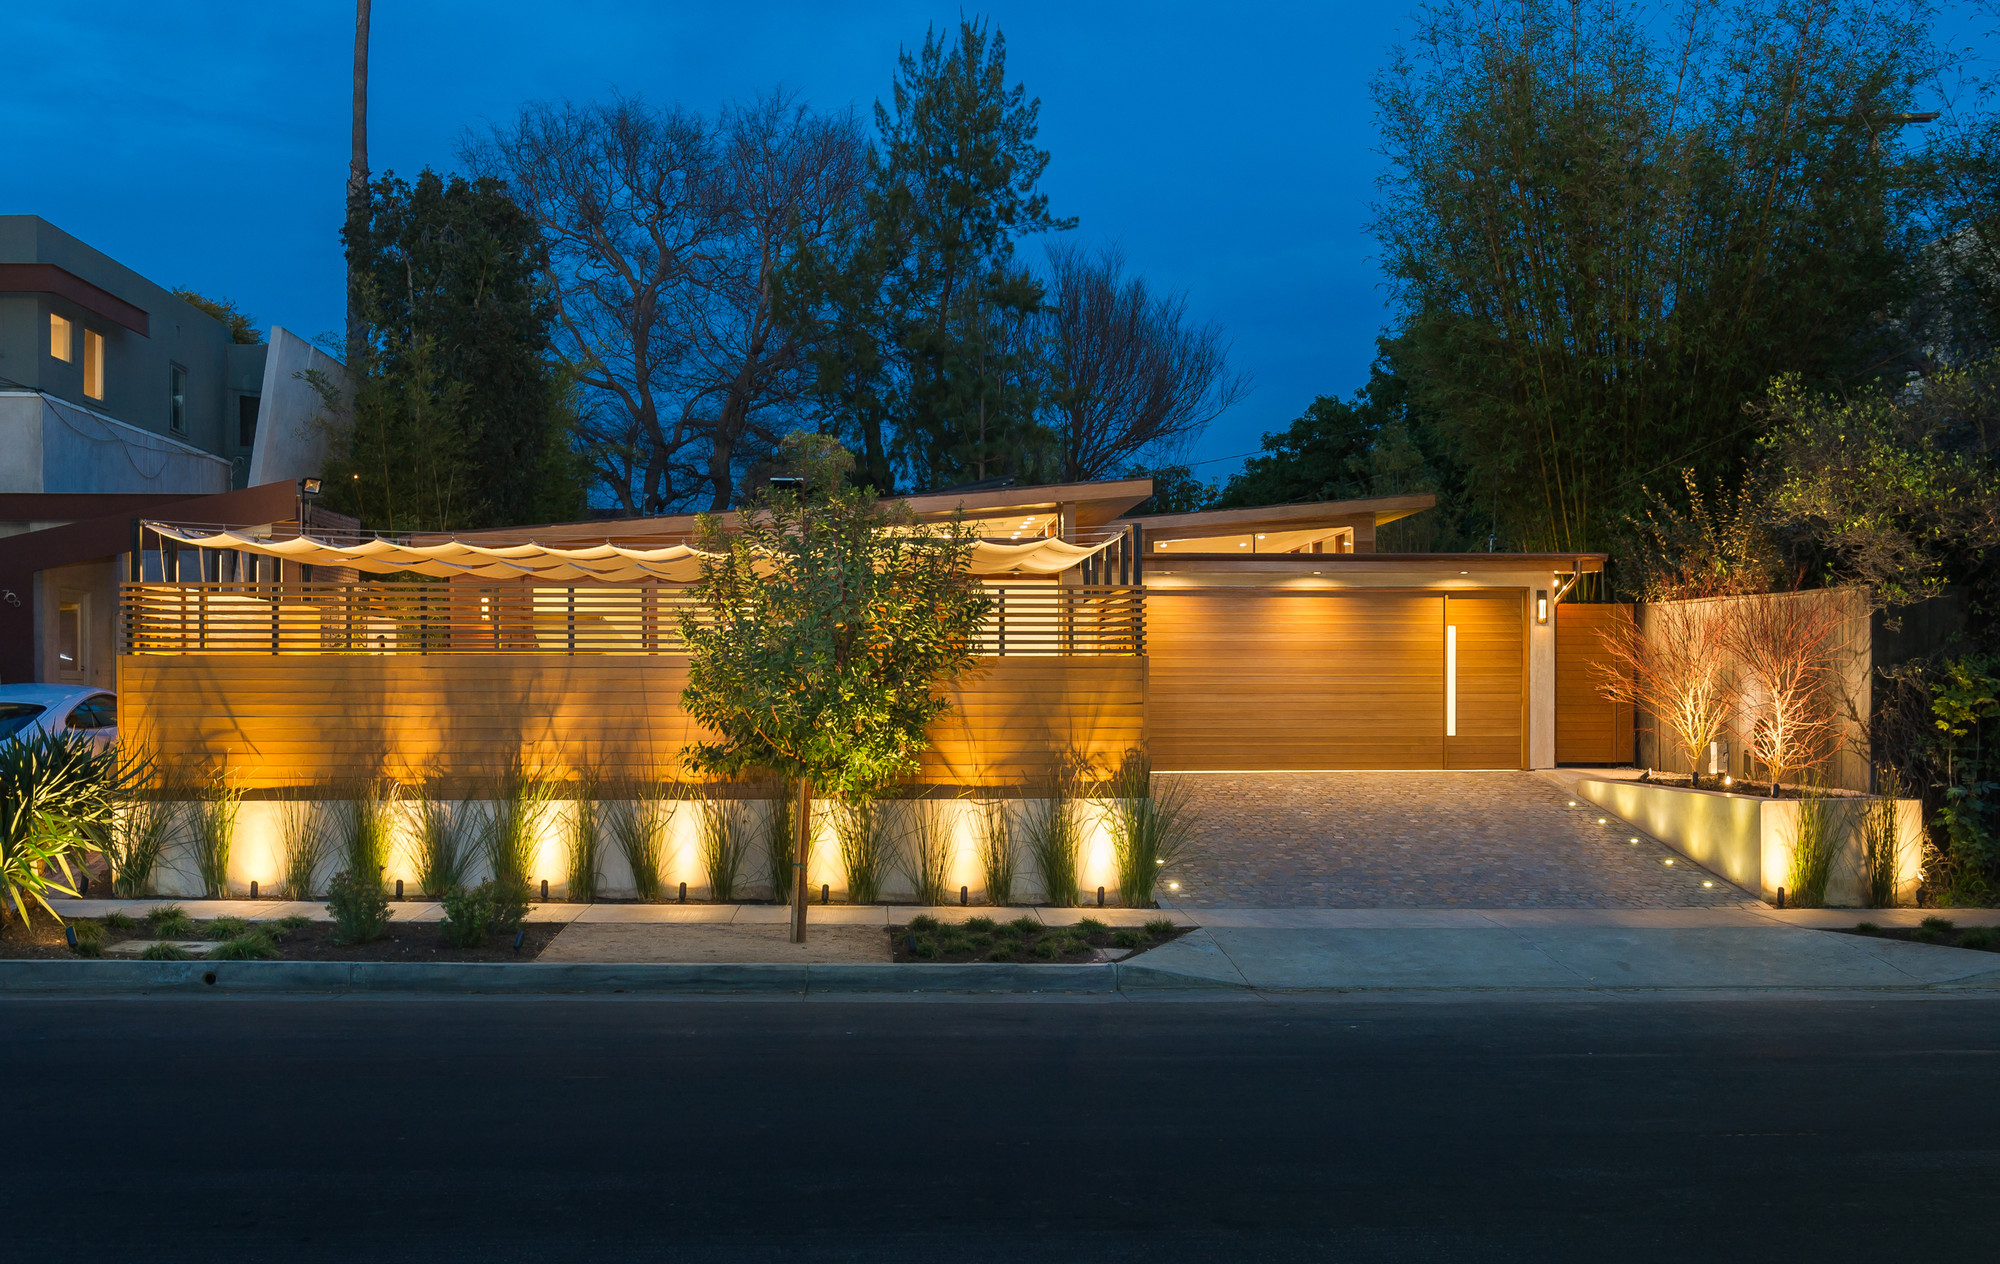 Westgate Residence / Kurt Krueger Architect | ArchDaily on bedroom night, window house night, kitchen night, bathroom night, landscaping house night, water house night, home house night,